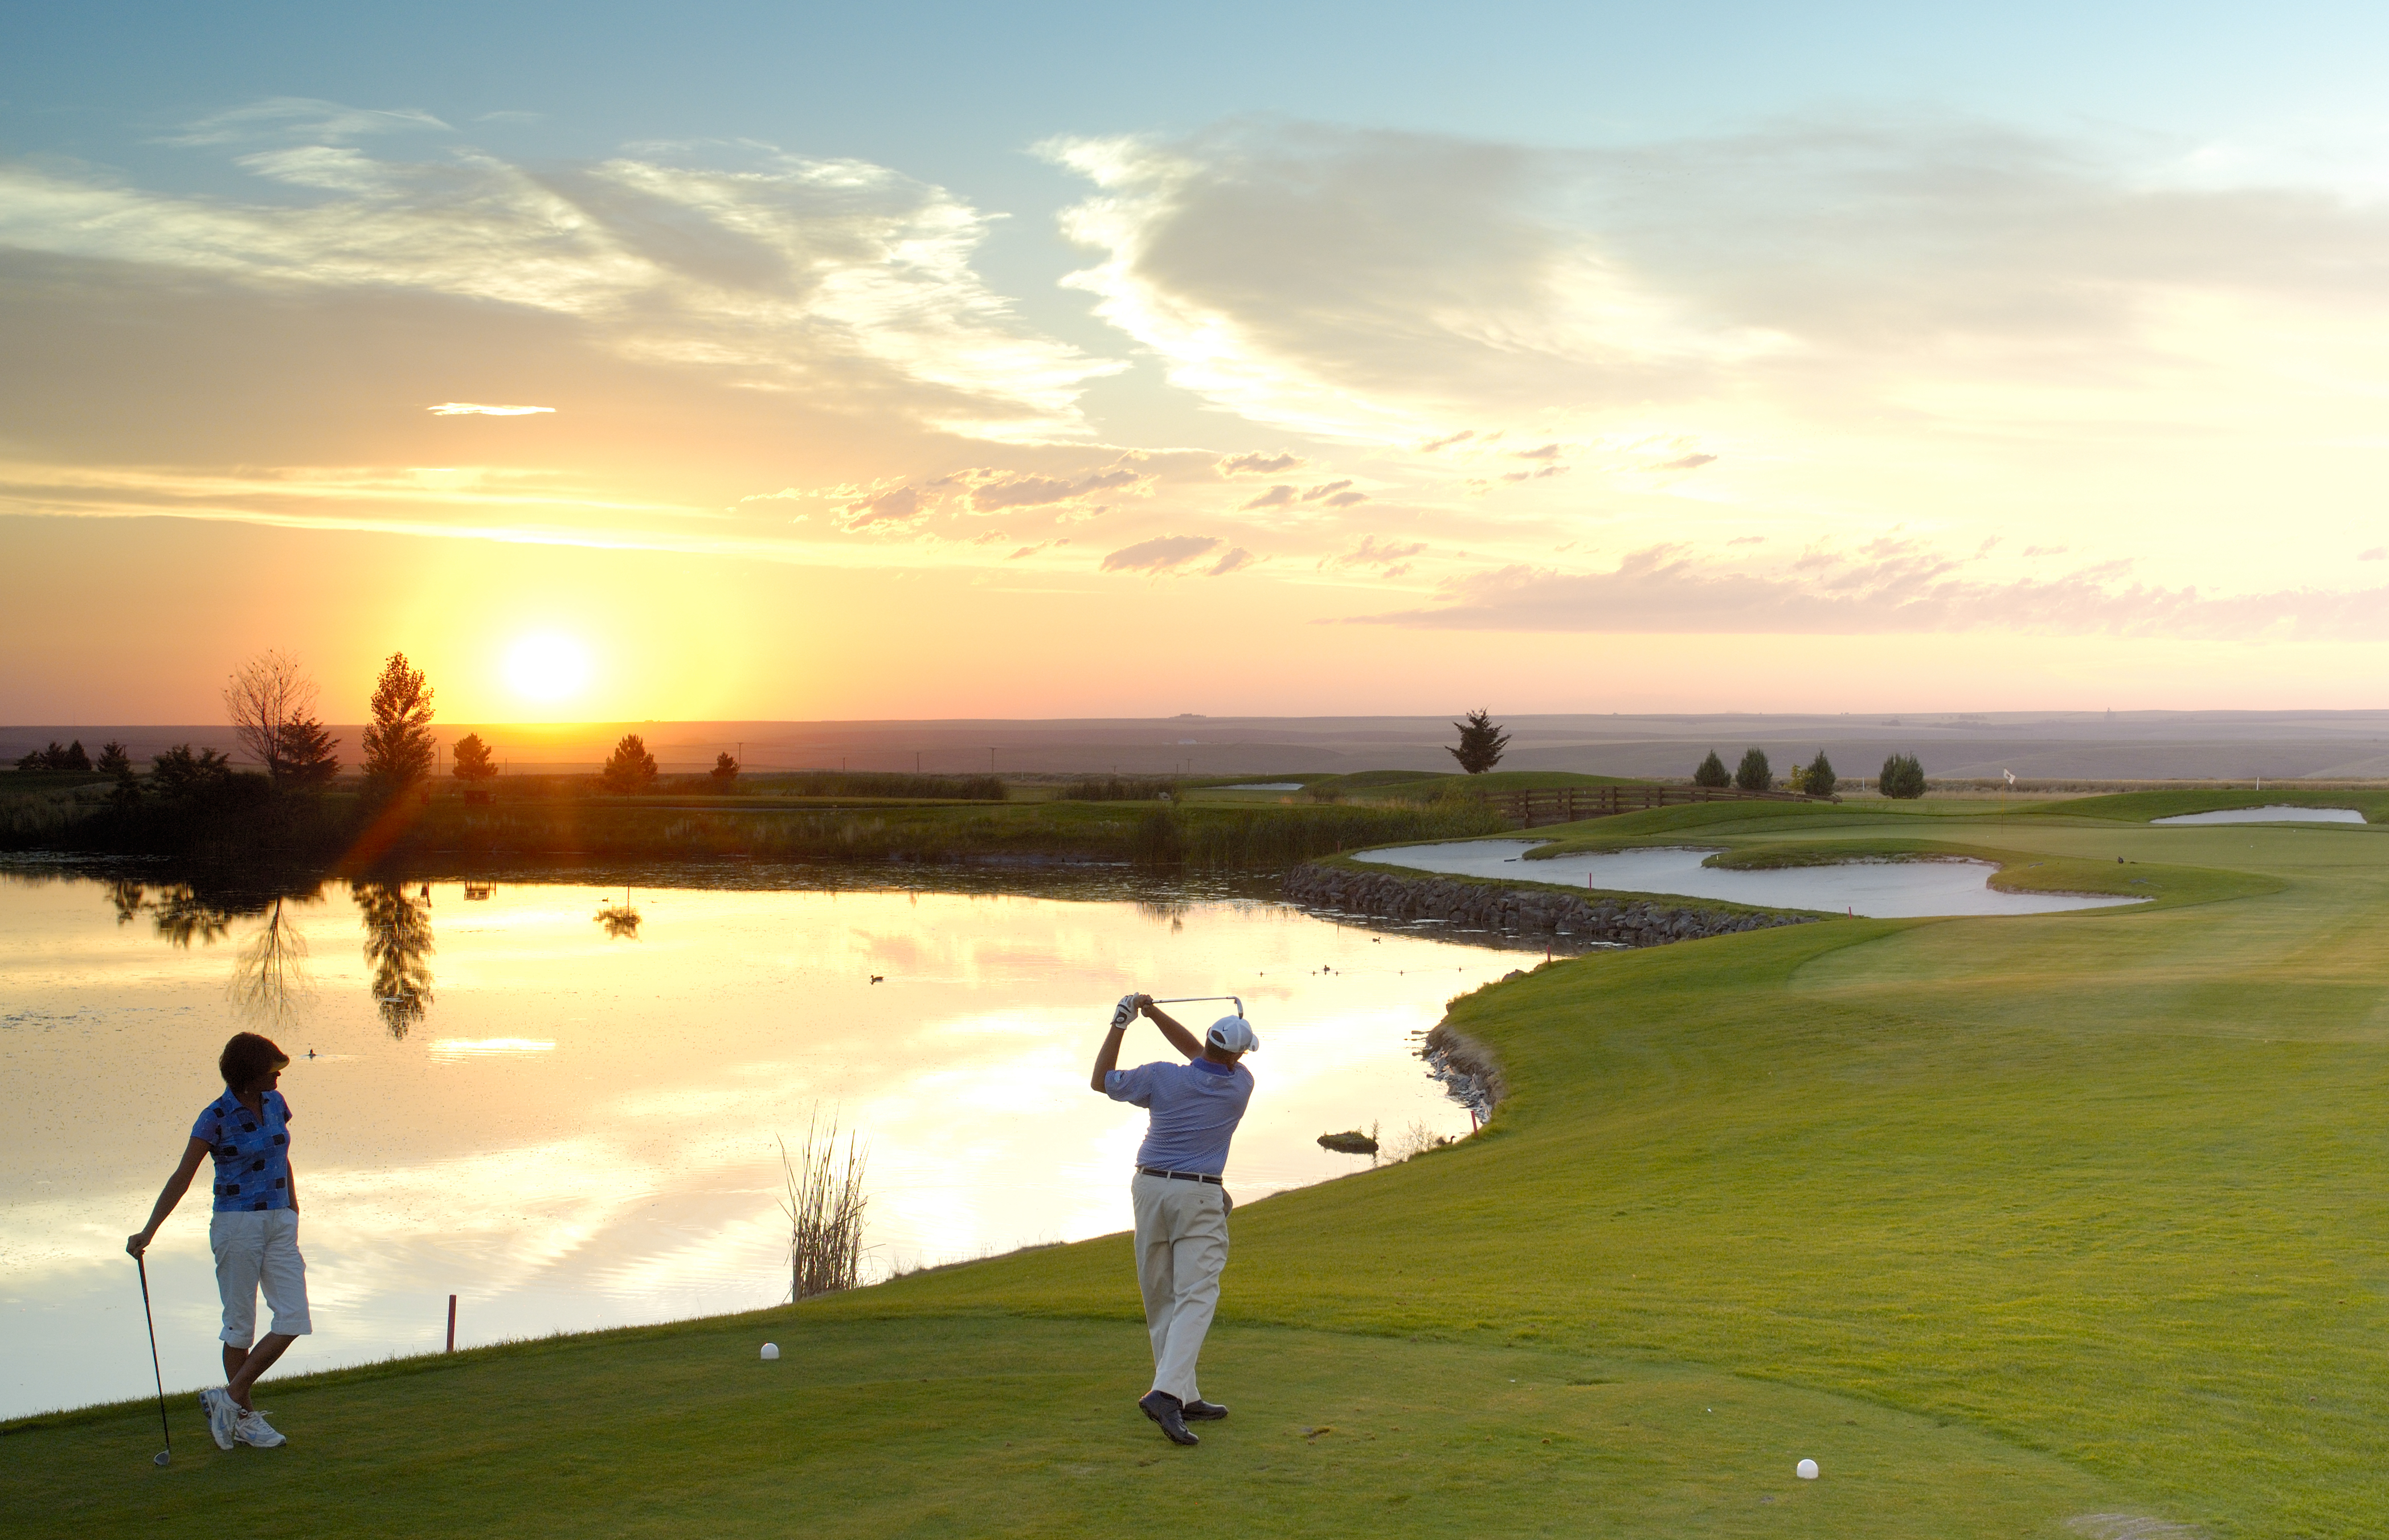 Man golfing at sunset on green golf course